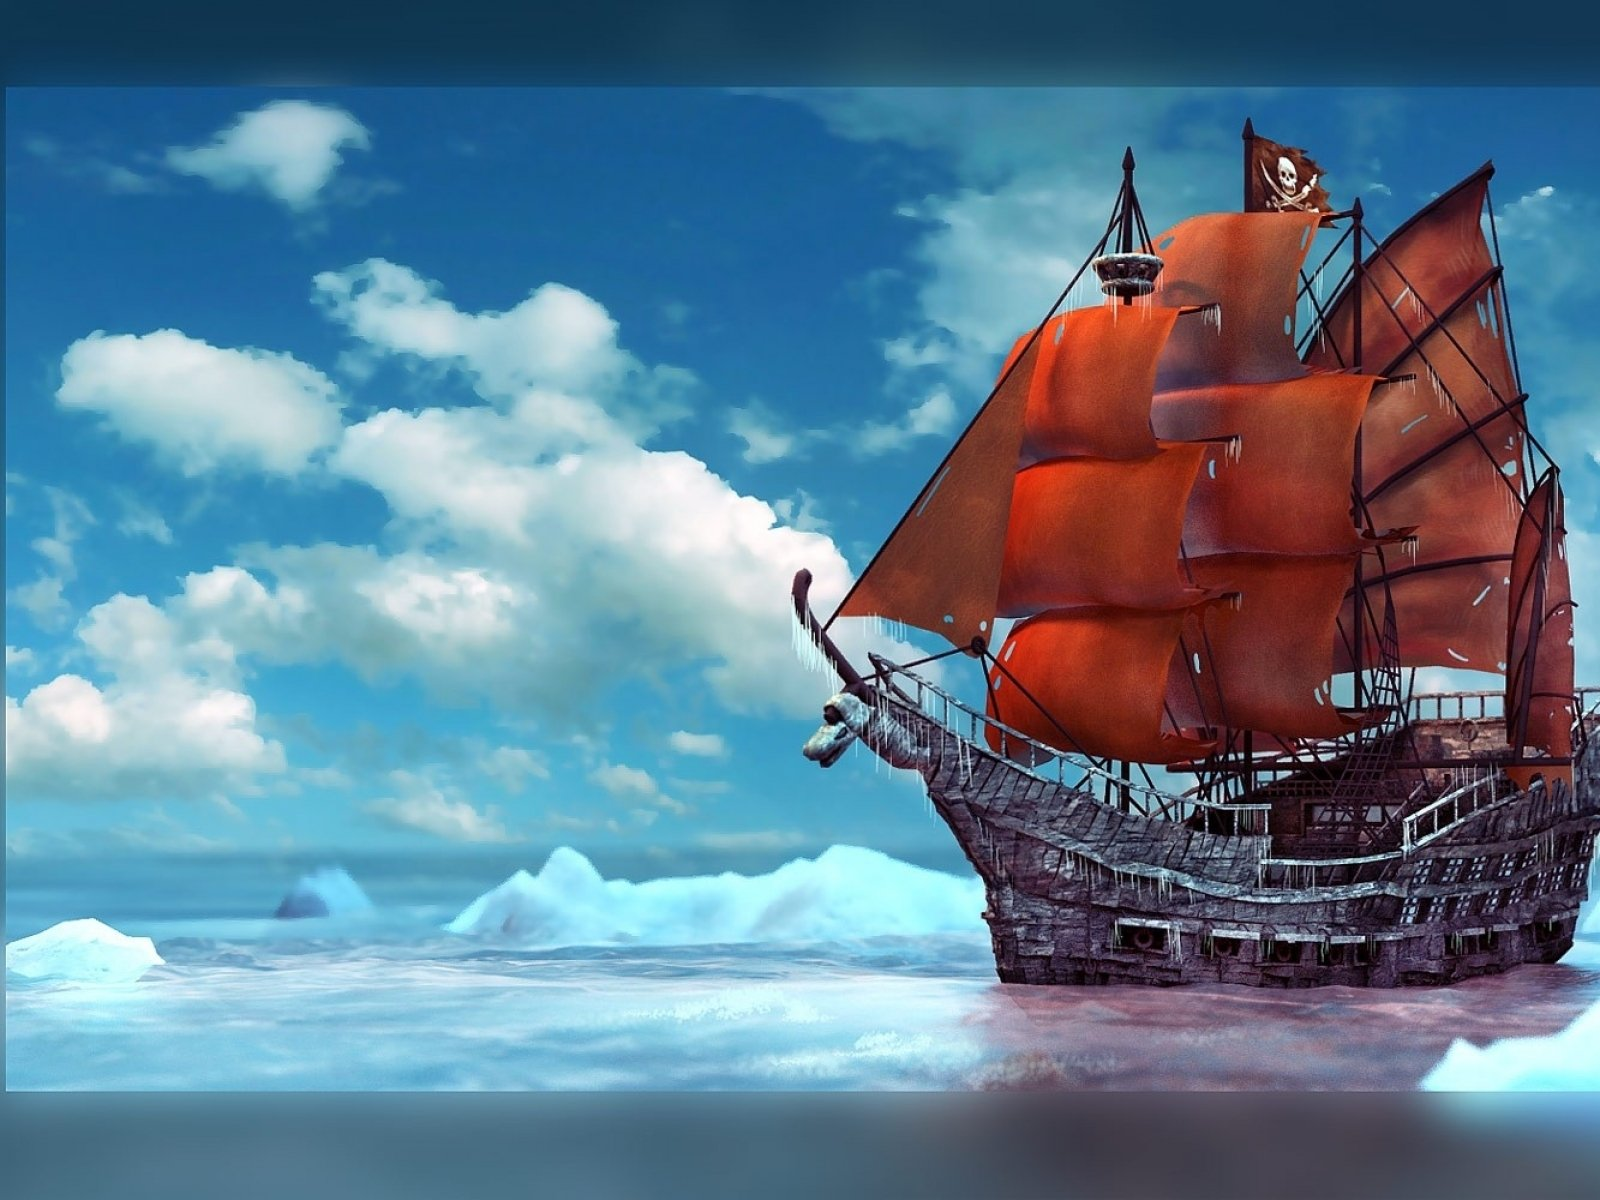 Fantasy ship cliff jolly roger pirate ship rock lightning wallpaper - Pirate Pirate Ship Hd Wallpaper Background Id 304125 1600x1200 Fantasy Pirate